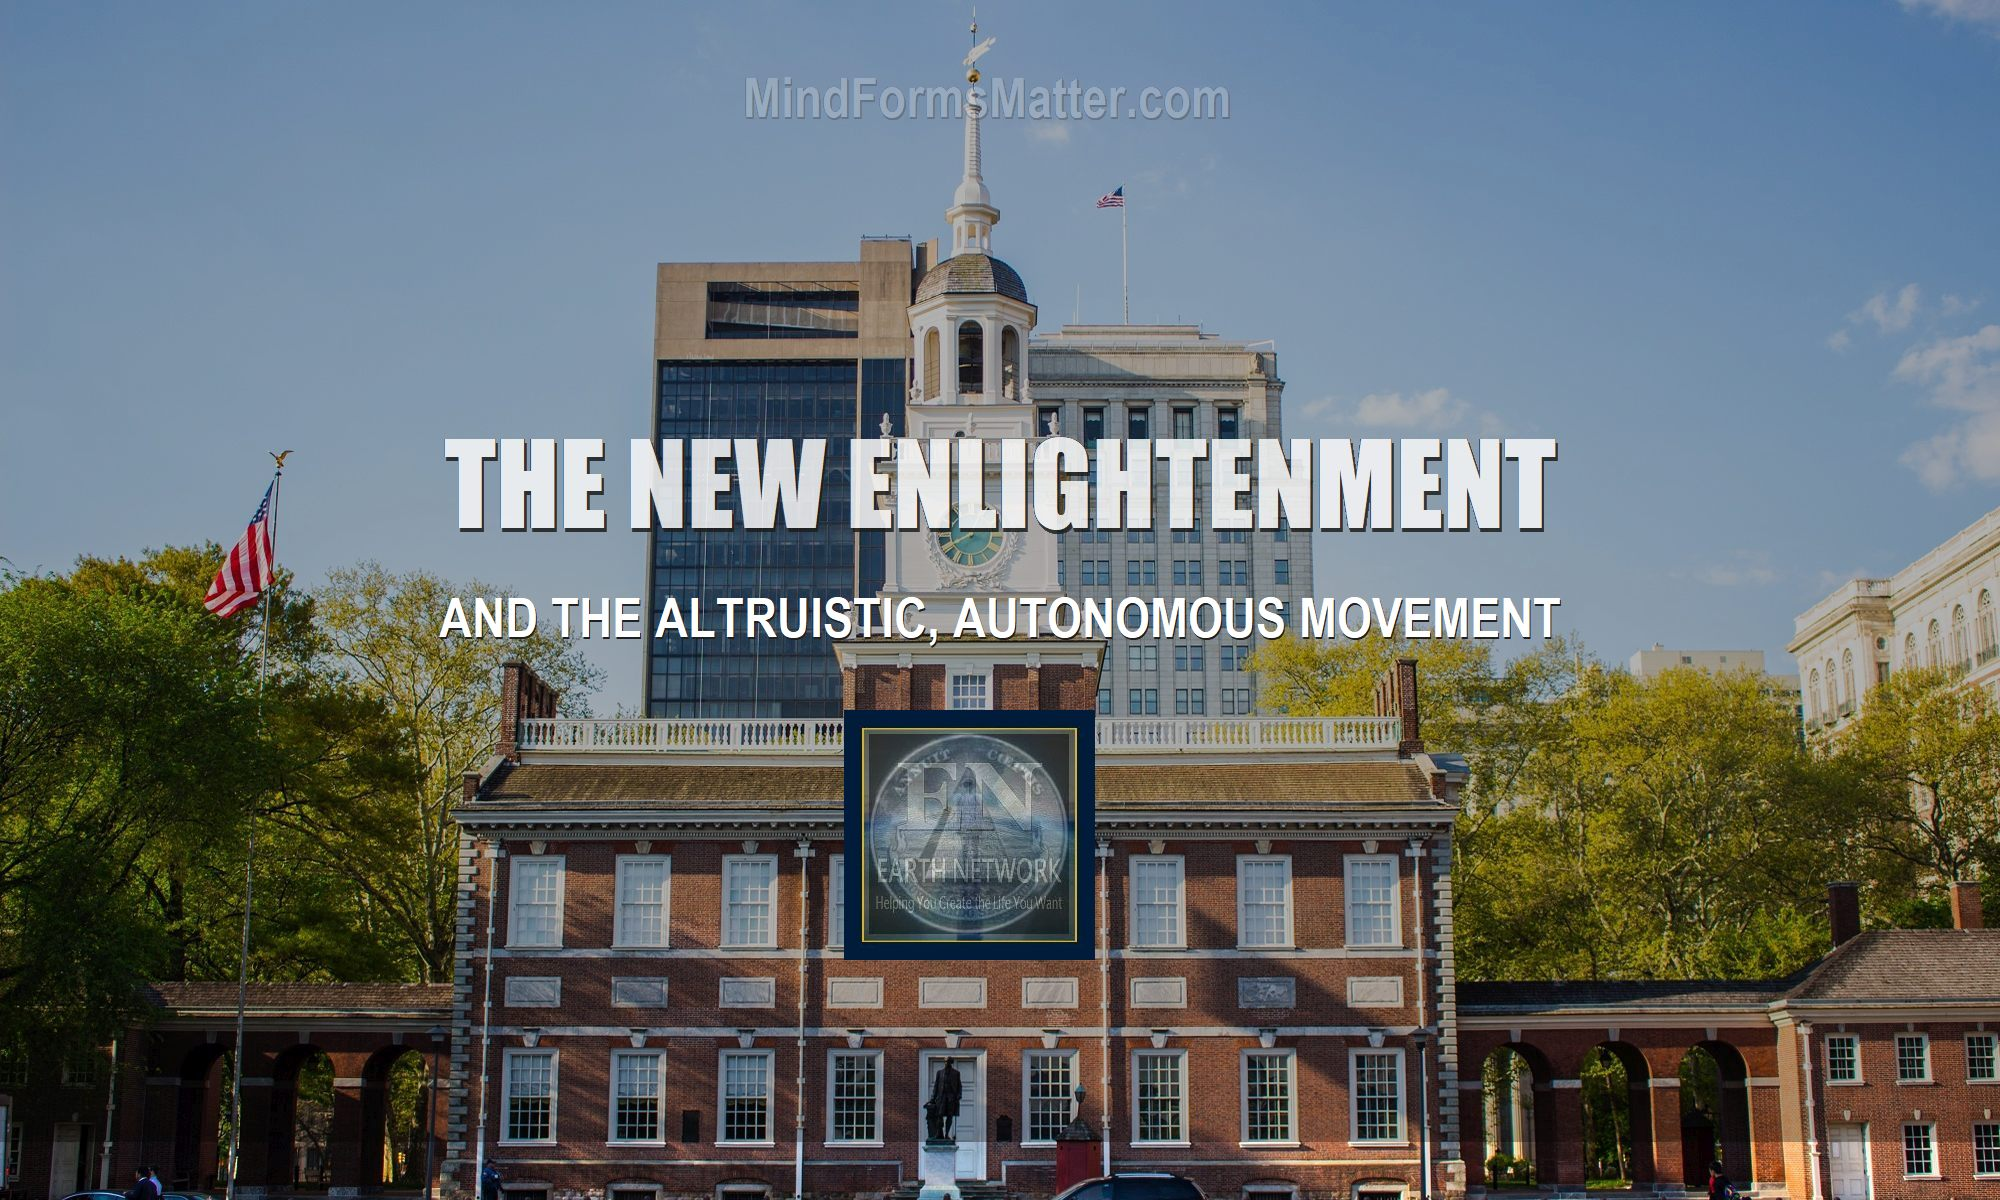 what-is-the-new-enlightenment-altruistic-autonomous-movement-philosophy-william-eastwood-founder-Independence hall-feature